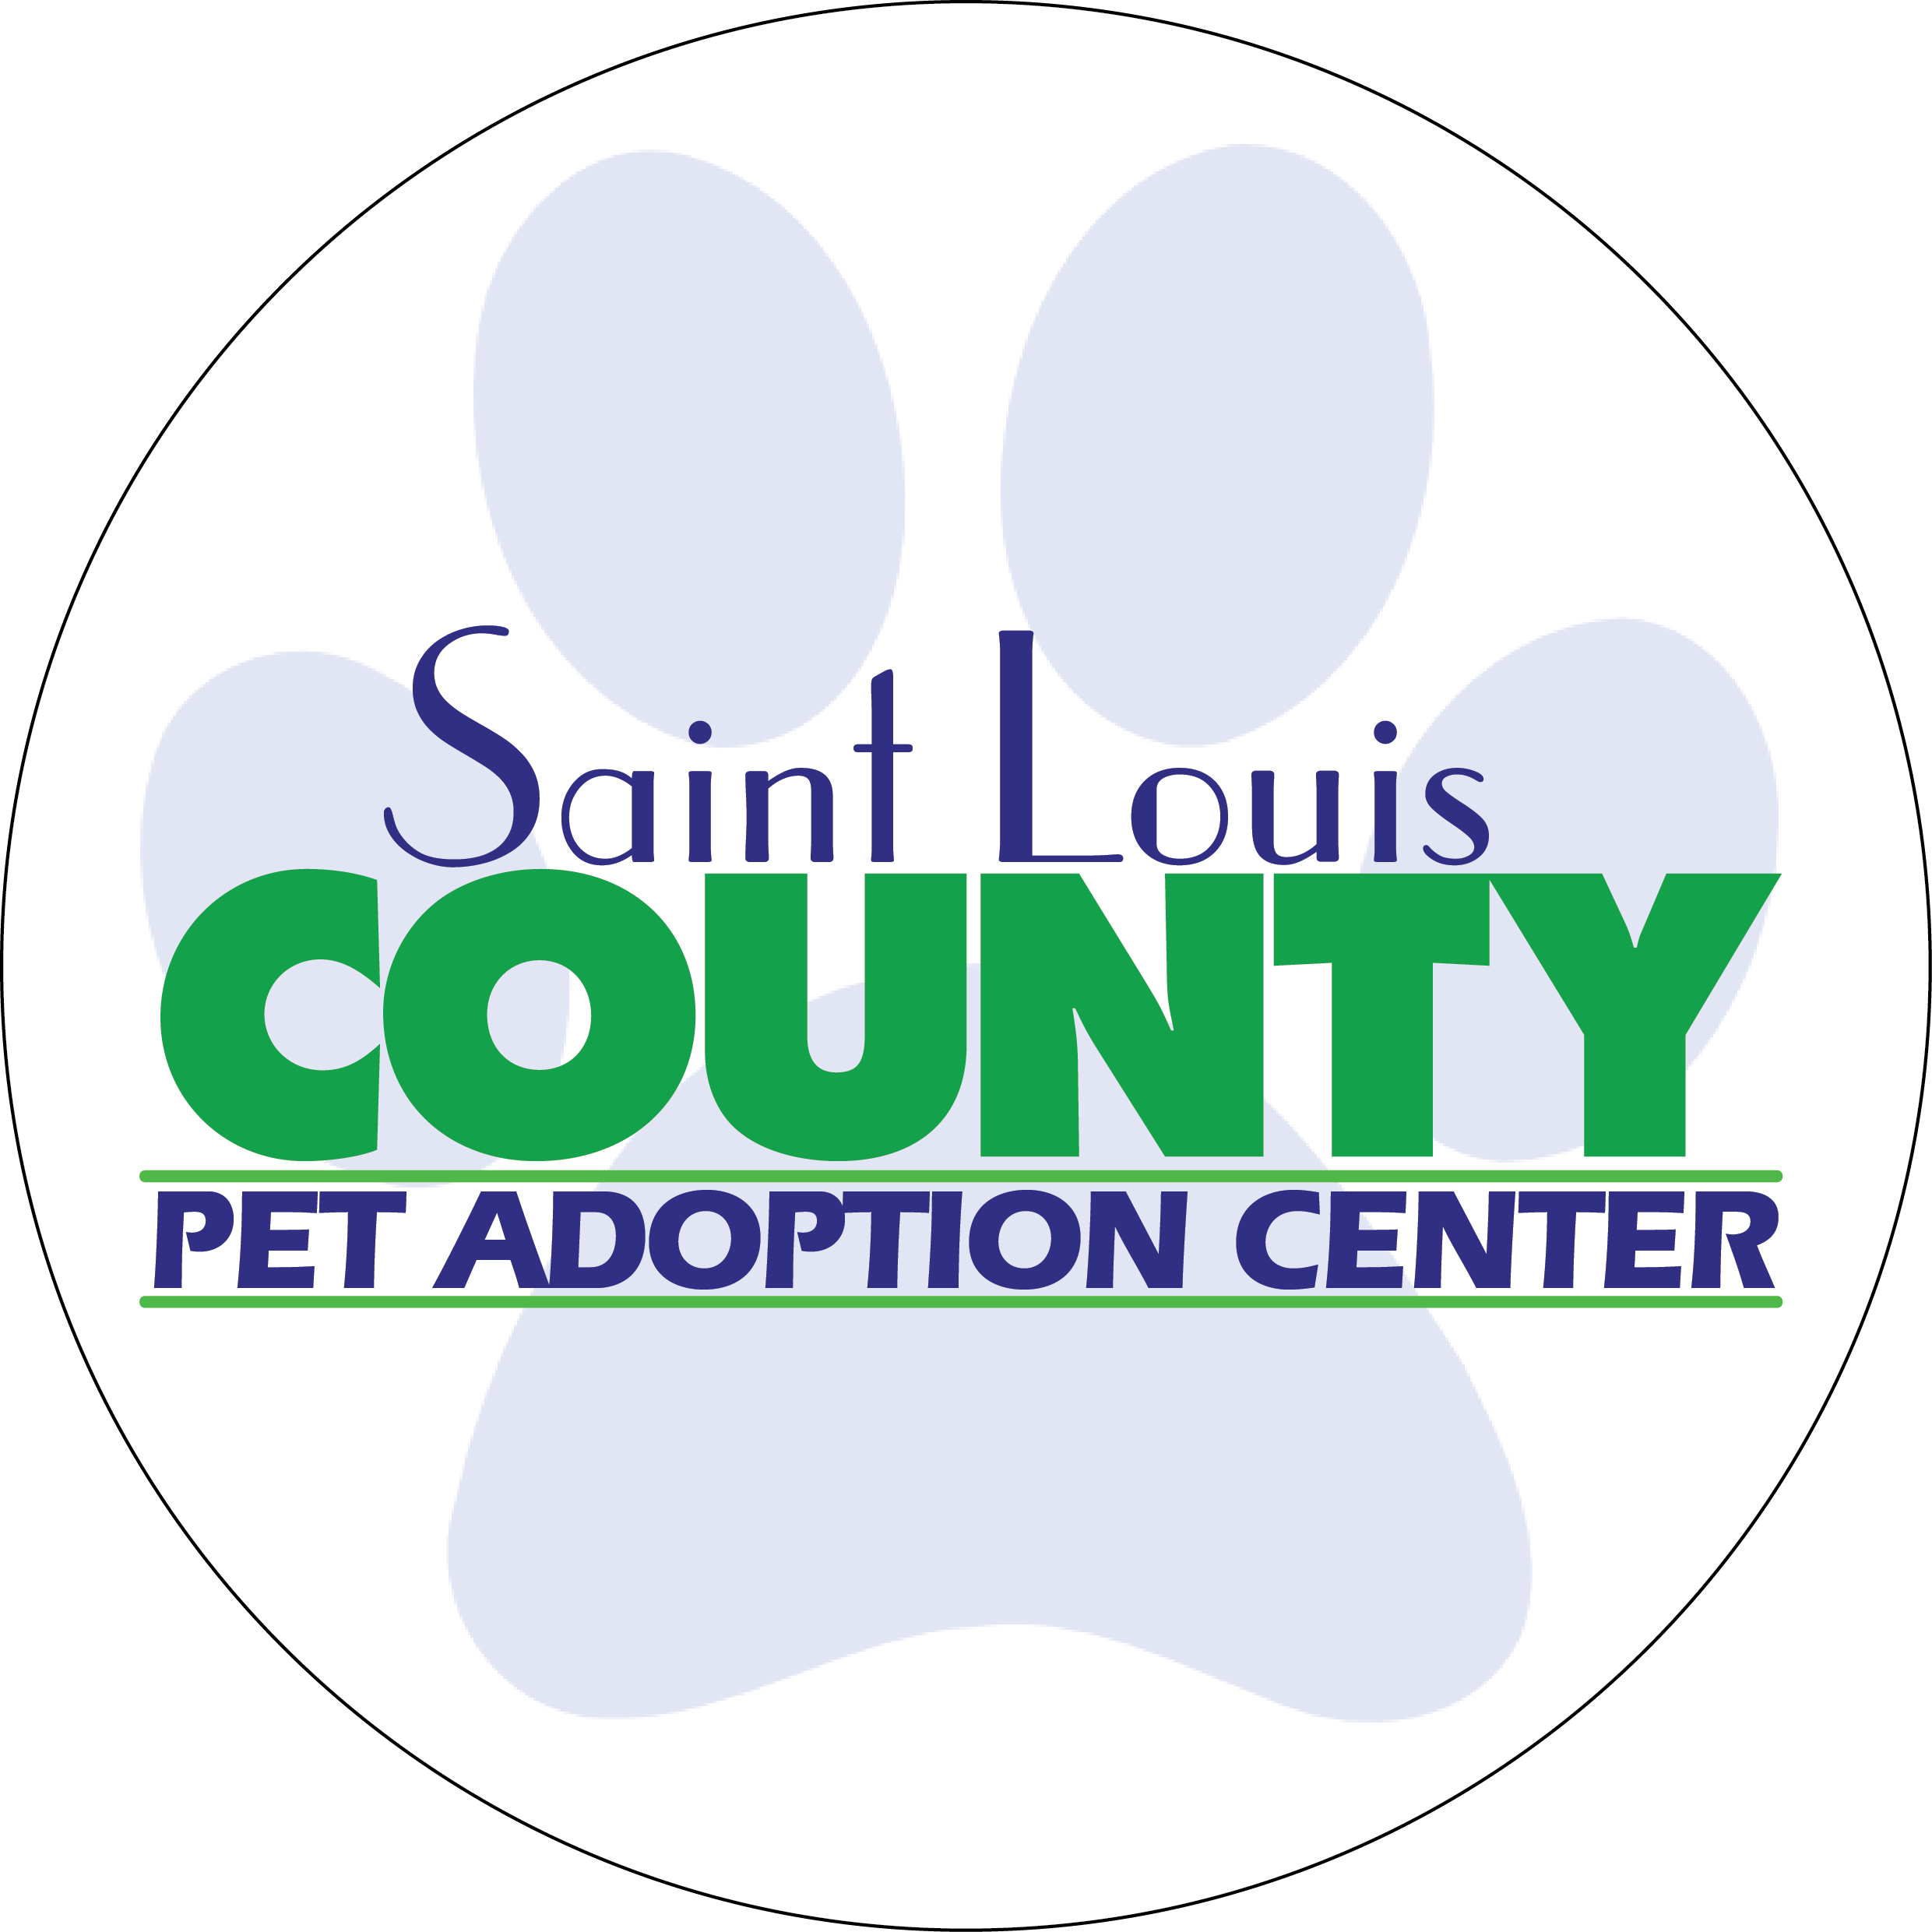 St. Louis Adoption Center Facebook